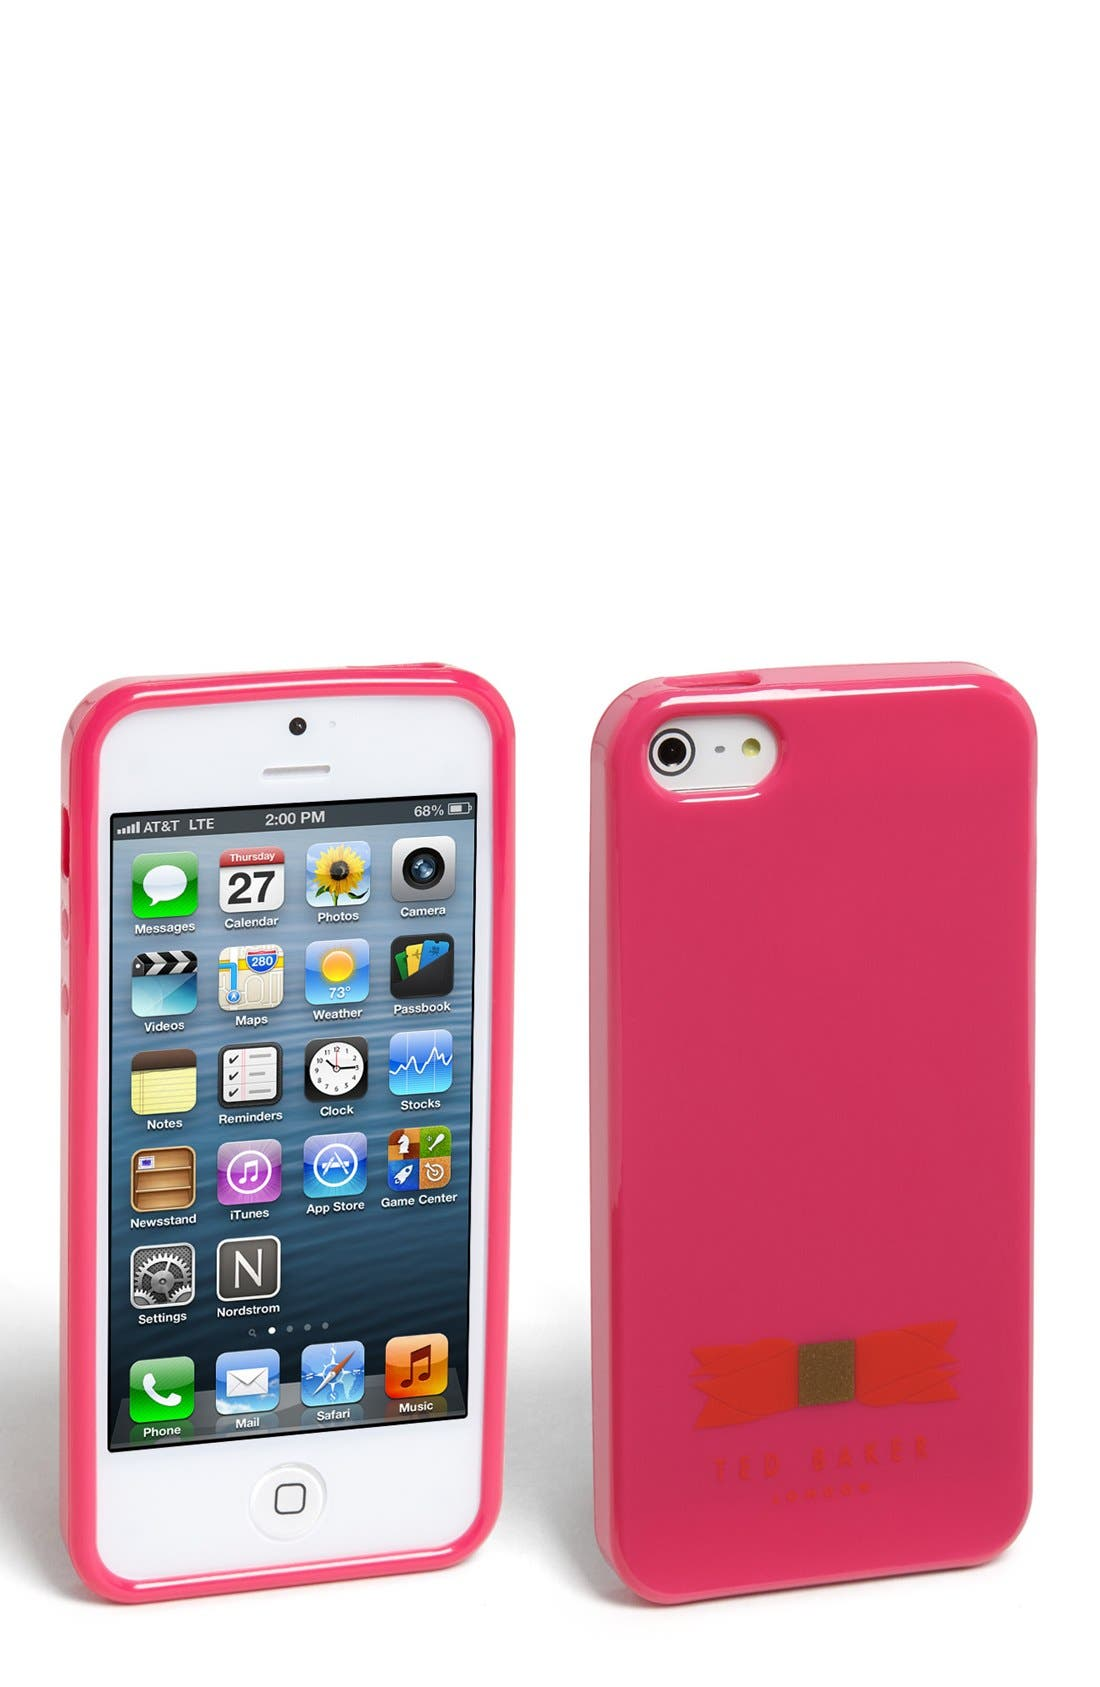 Main Image - Ted Baker London 'Sweet Talking' iPhone 5 Case